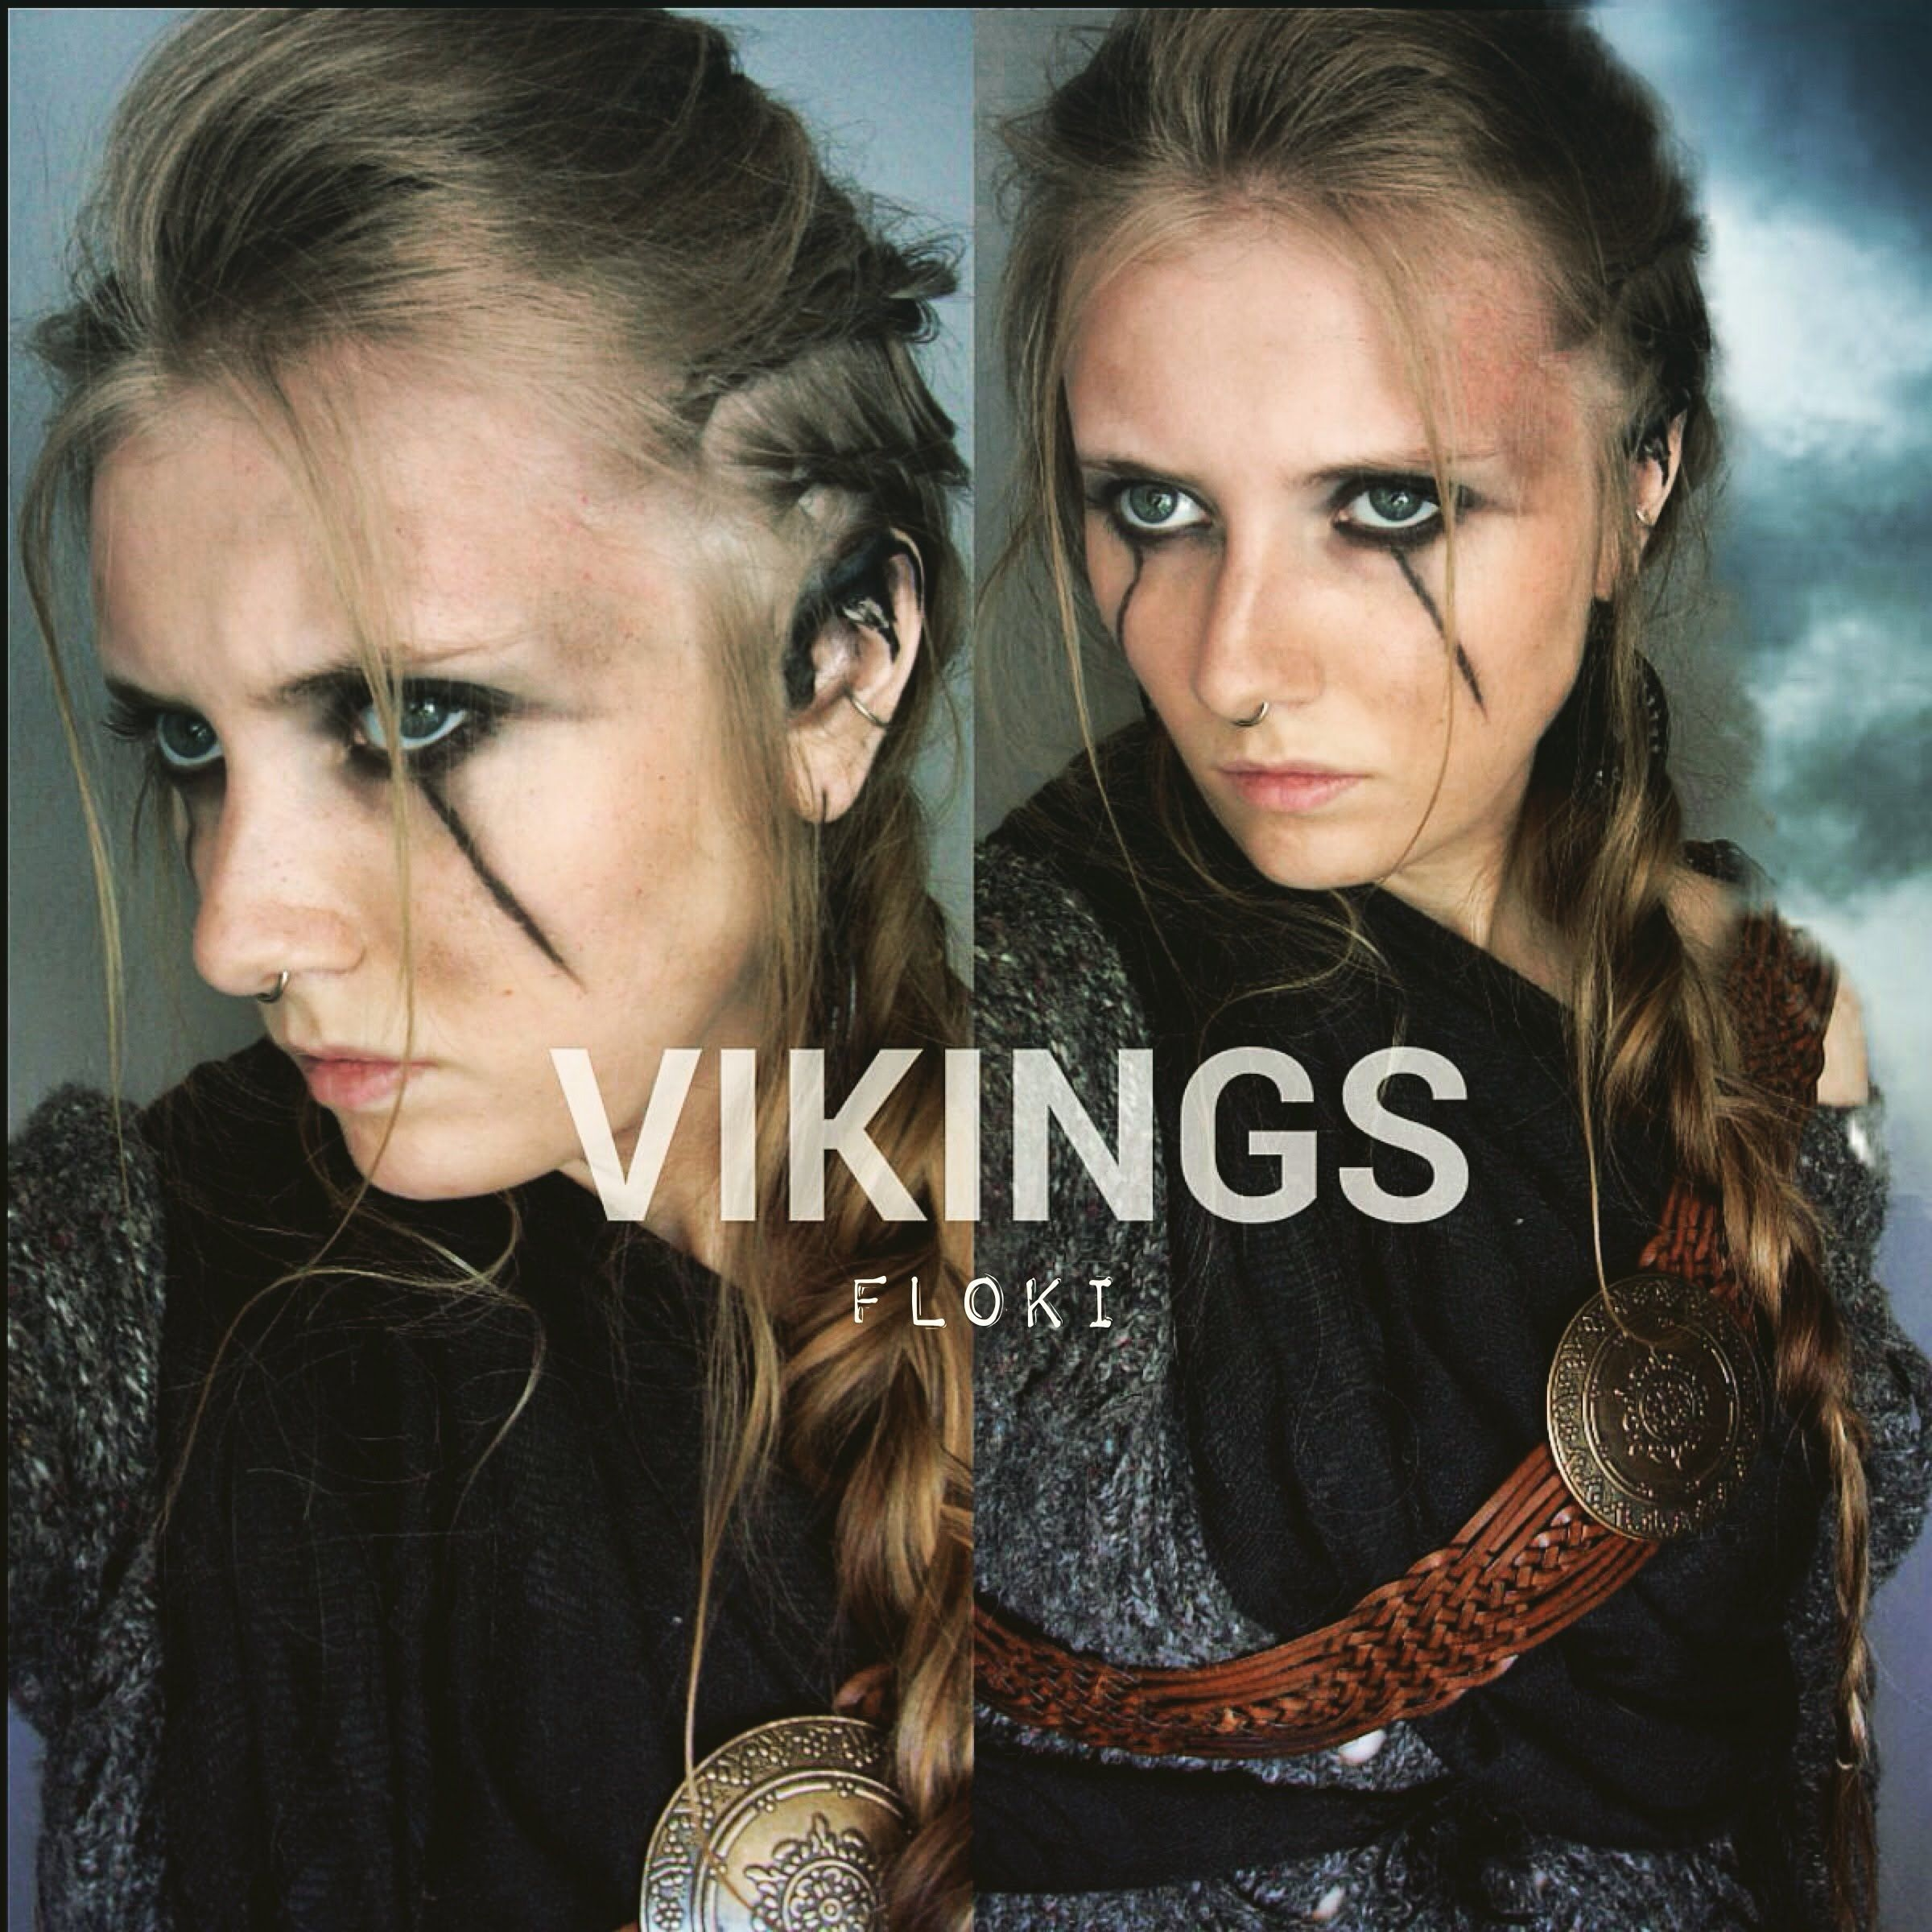 vikings inspired hair makeup floki viking costume pinterest deguisement. Black Bedroom Furniture Sets. Home Design Ideas